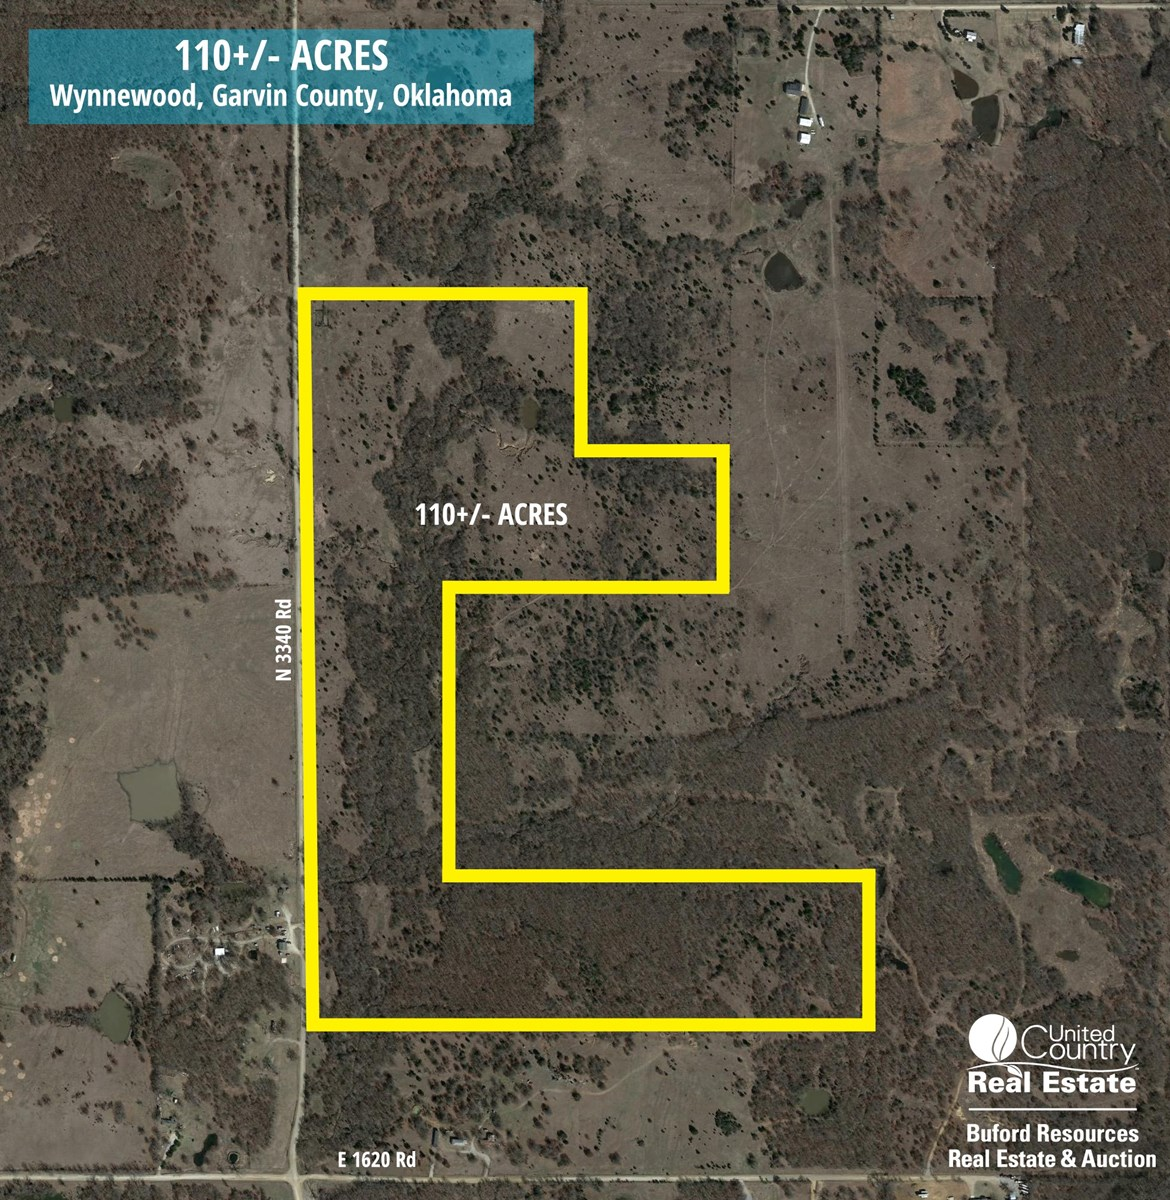 LAND PROPERTY FOR SALE RECREATIONAL WYNNEWOOD GARVIN COUNTY